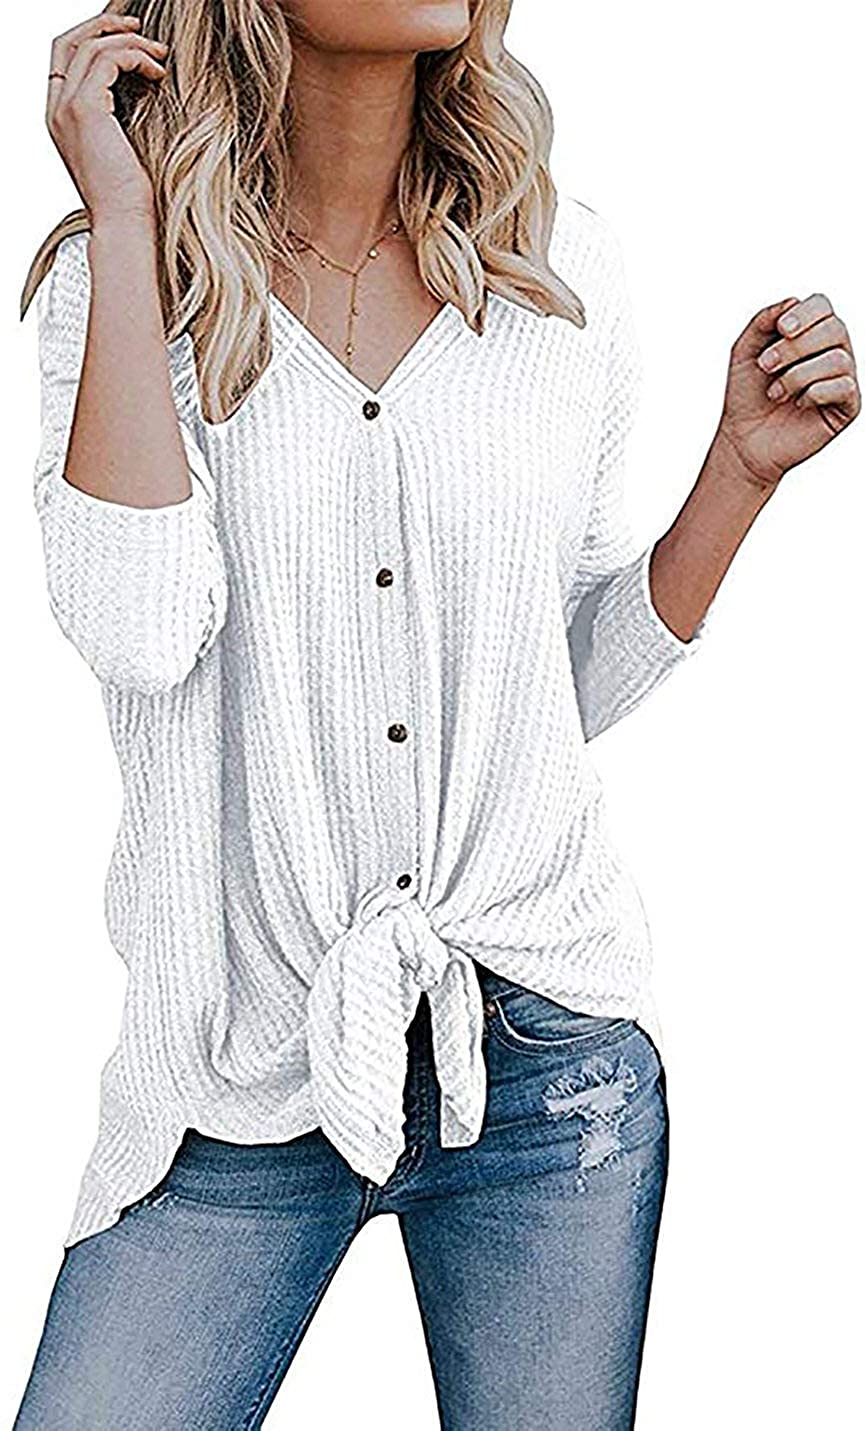 Green Ink Women's Waffle Knit Tunic Blouse Tie Knot Henley Tops Loose Fitting Bat Wing Plain Shirts